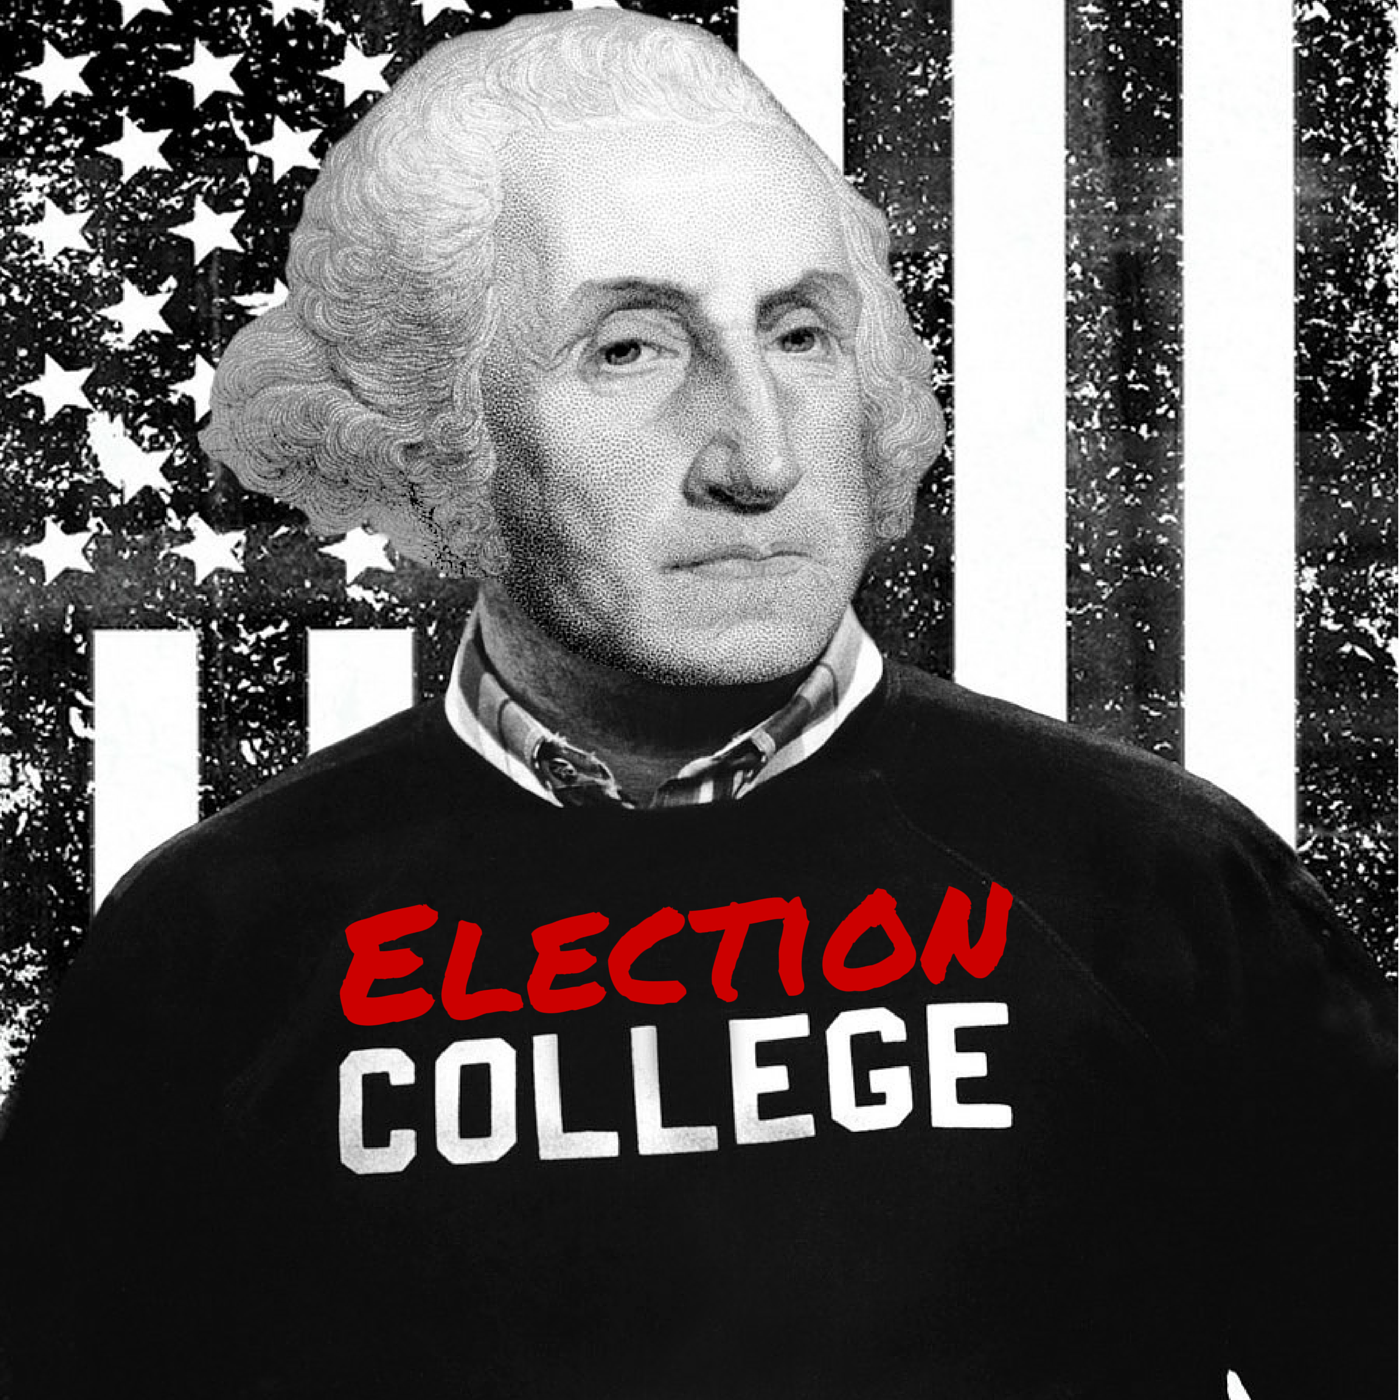 The Life of Samuel Adams - Part 1 | Episode #171 | Election College: United States Presidential Election History